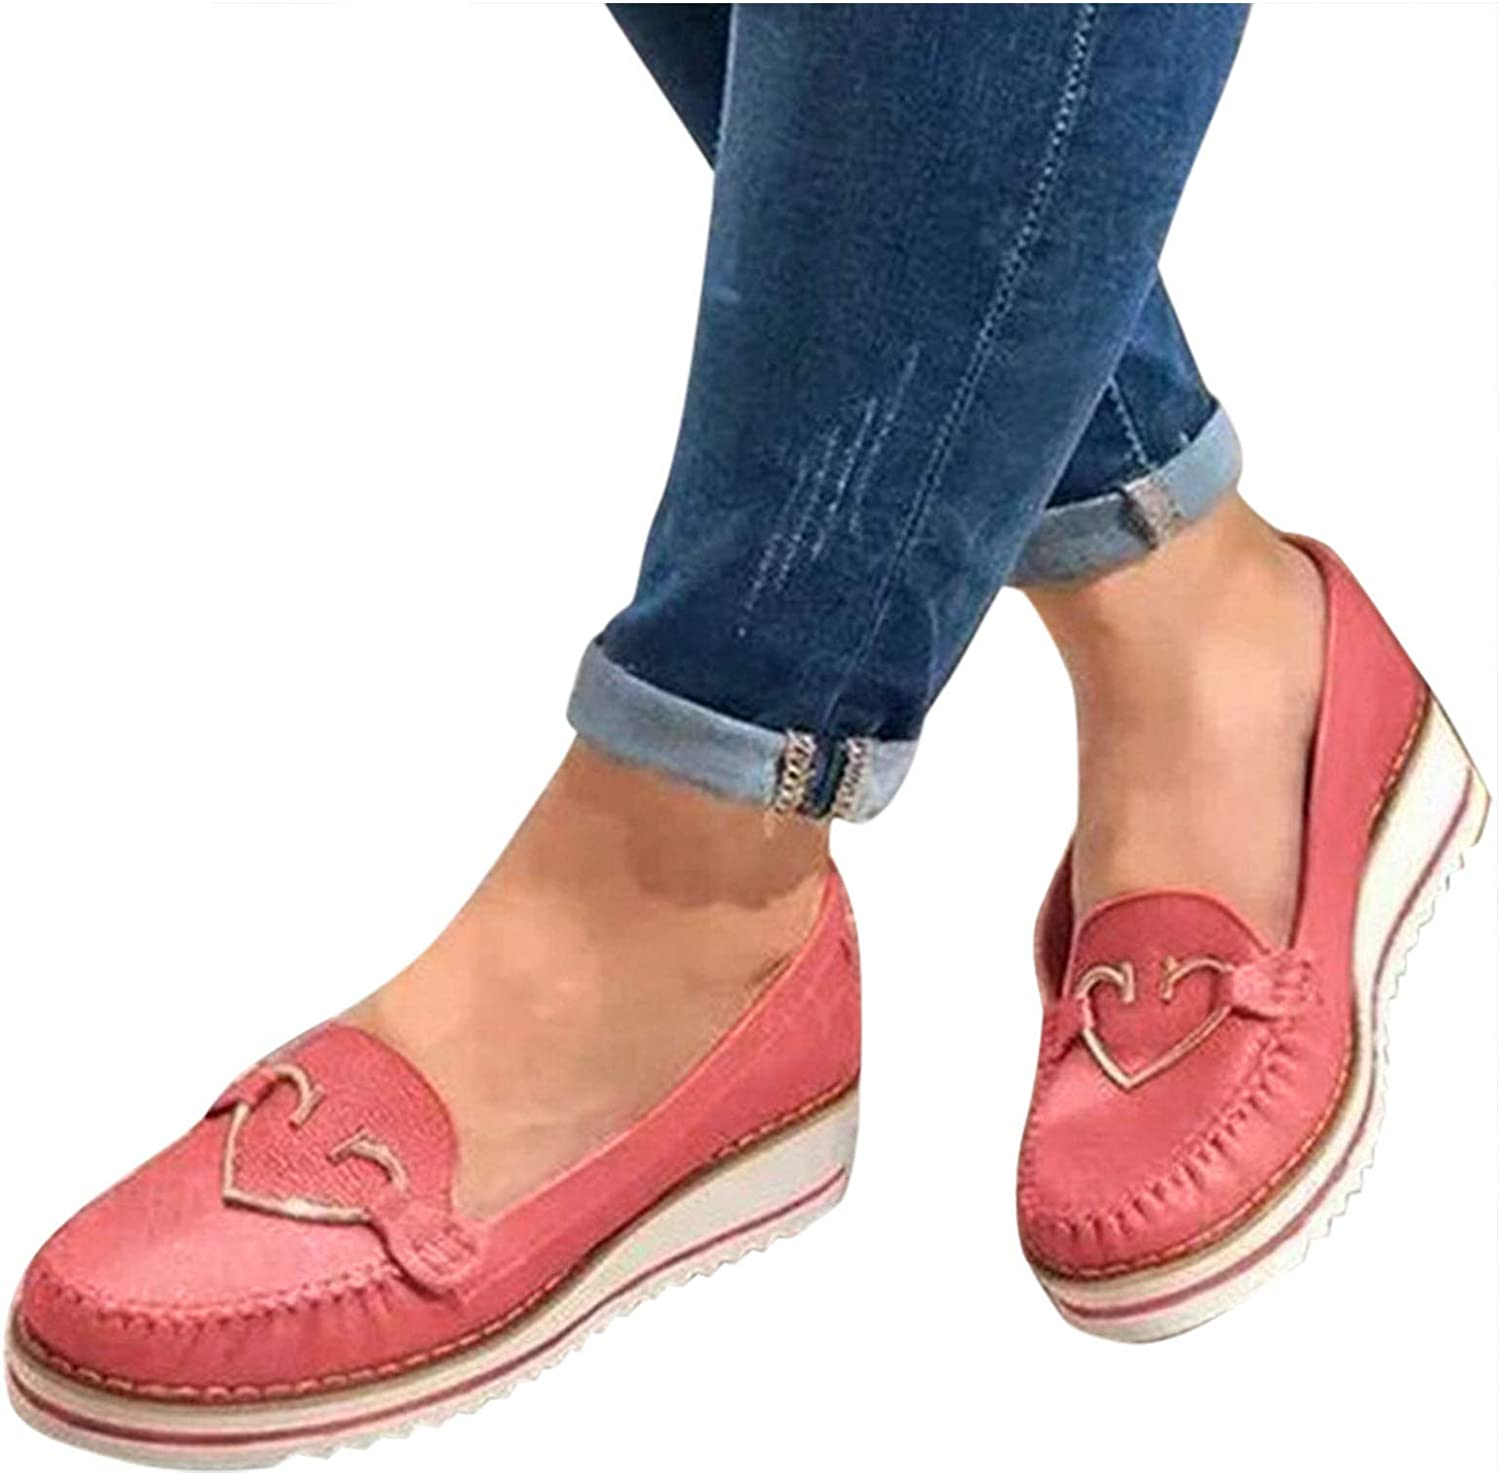 Niceast Walking Shoes for Women Fashion Round-Toe Retro Platform Slip on Work Flat Shoes Comfortable Casual Office Loafers